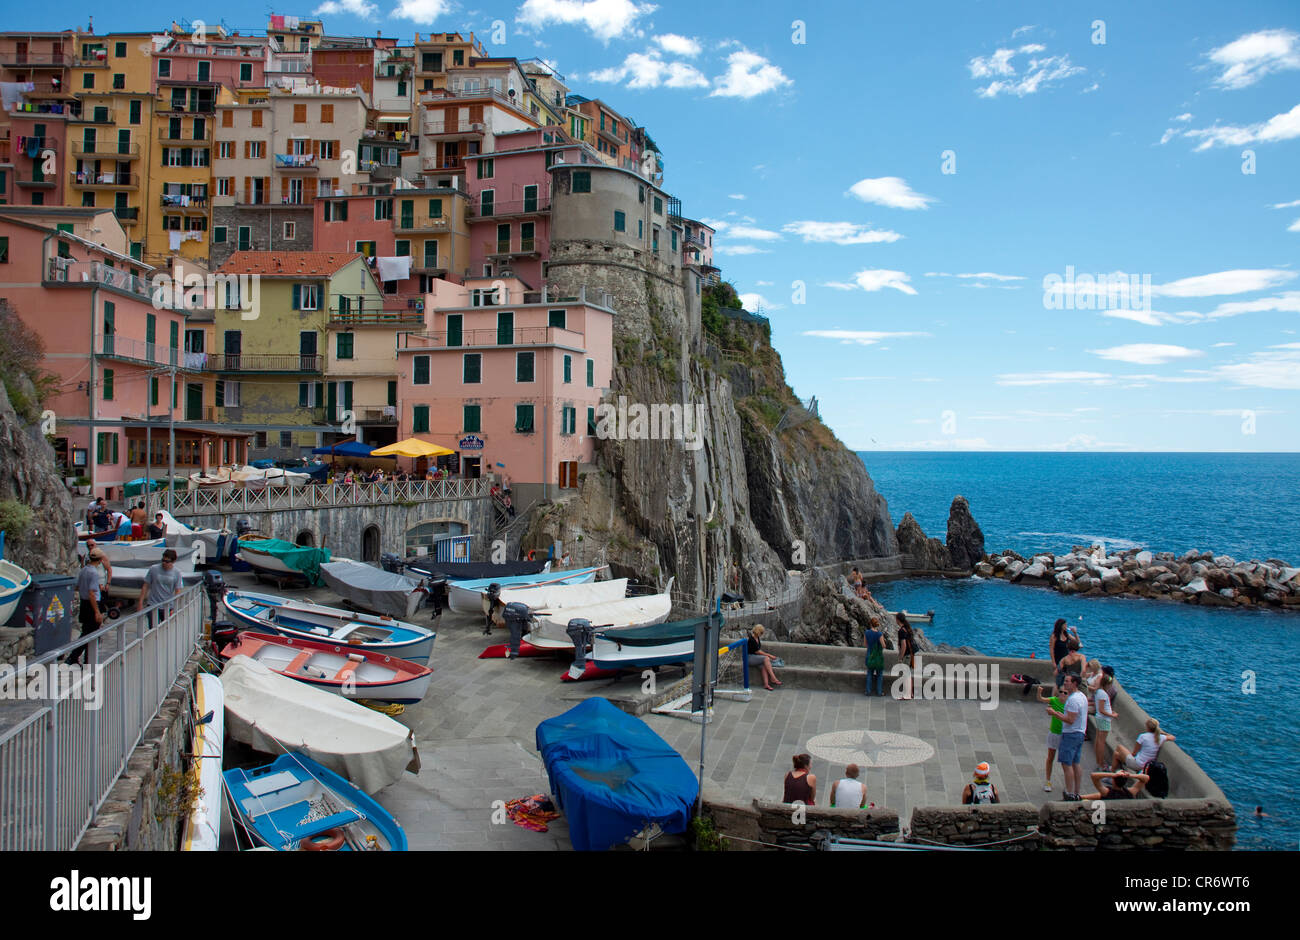 Due to lack of space in the port, the fishing boats are parked on rolls, port of the fishing village , Cinque Terre, - Stock Image